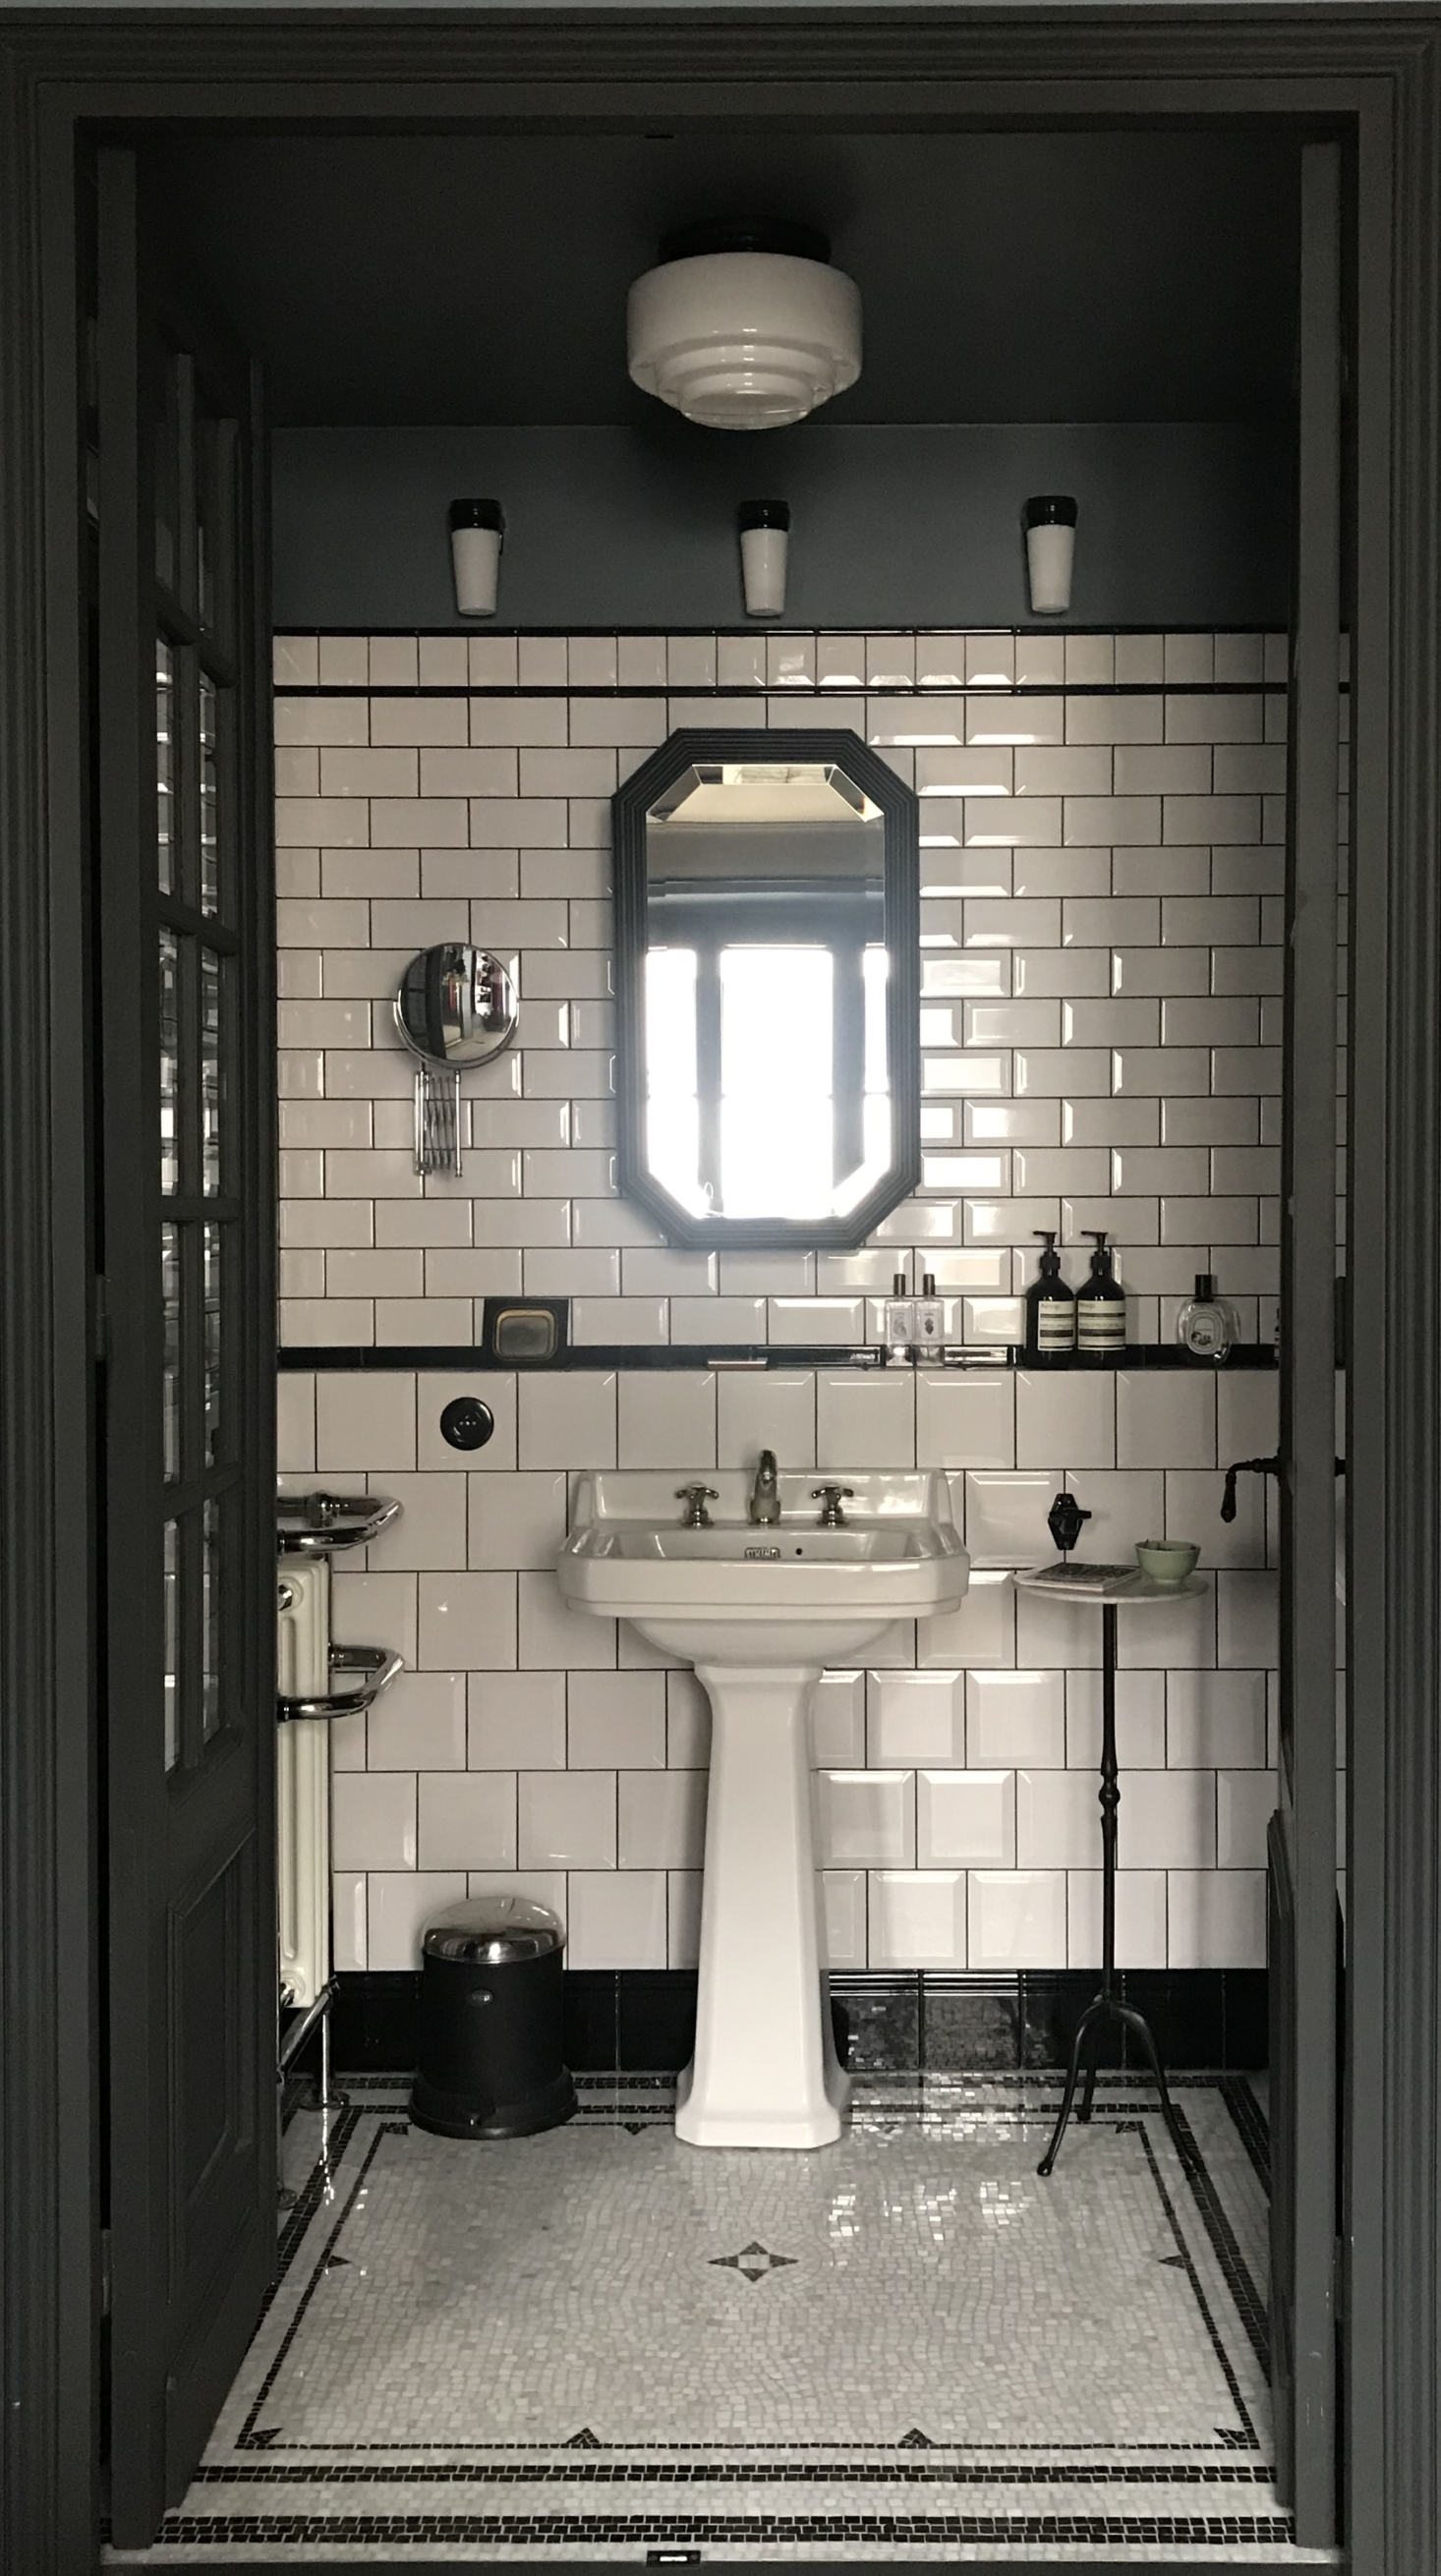 1920s-Style Bathrooms That Inspire | Rue